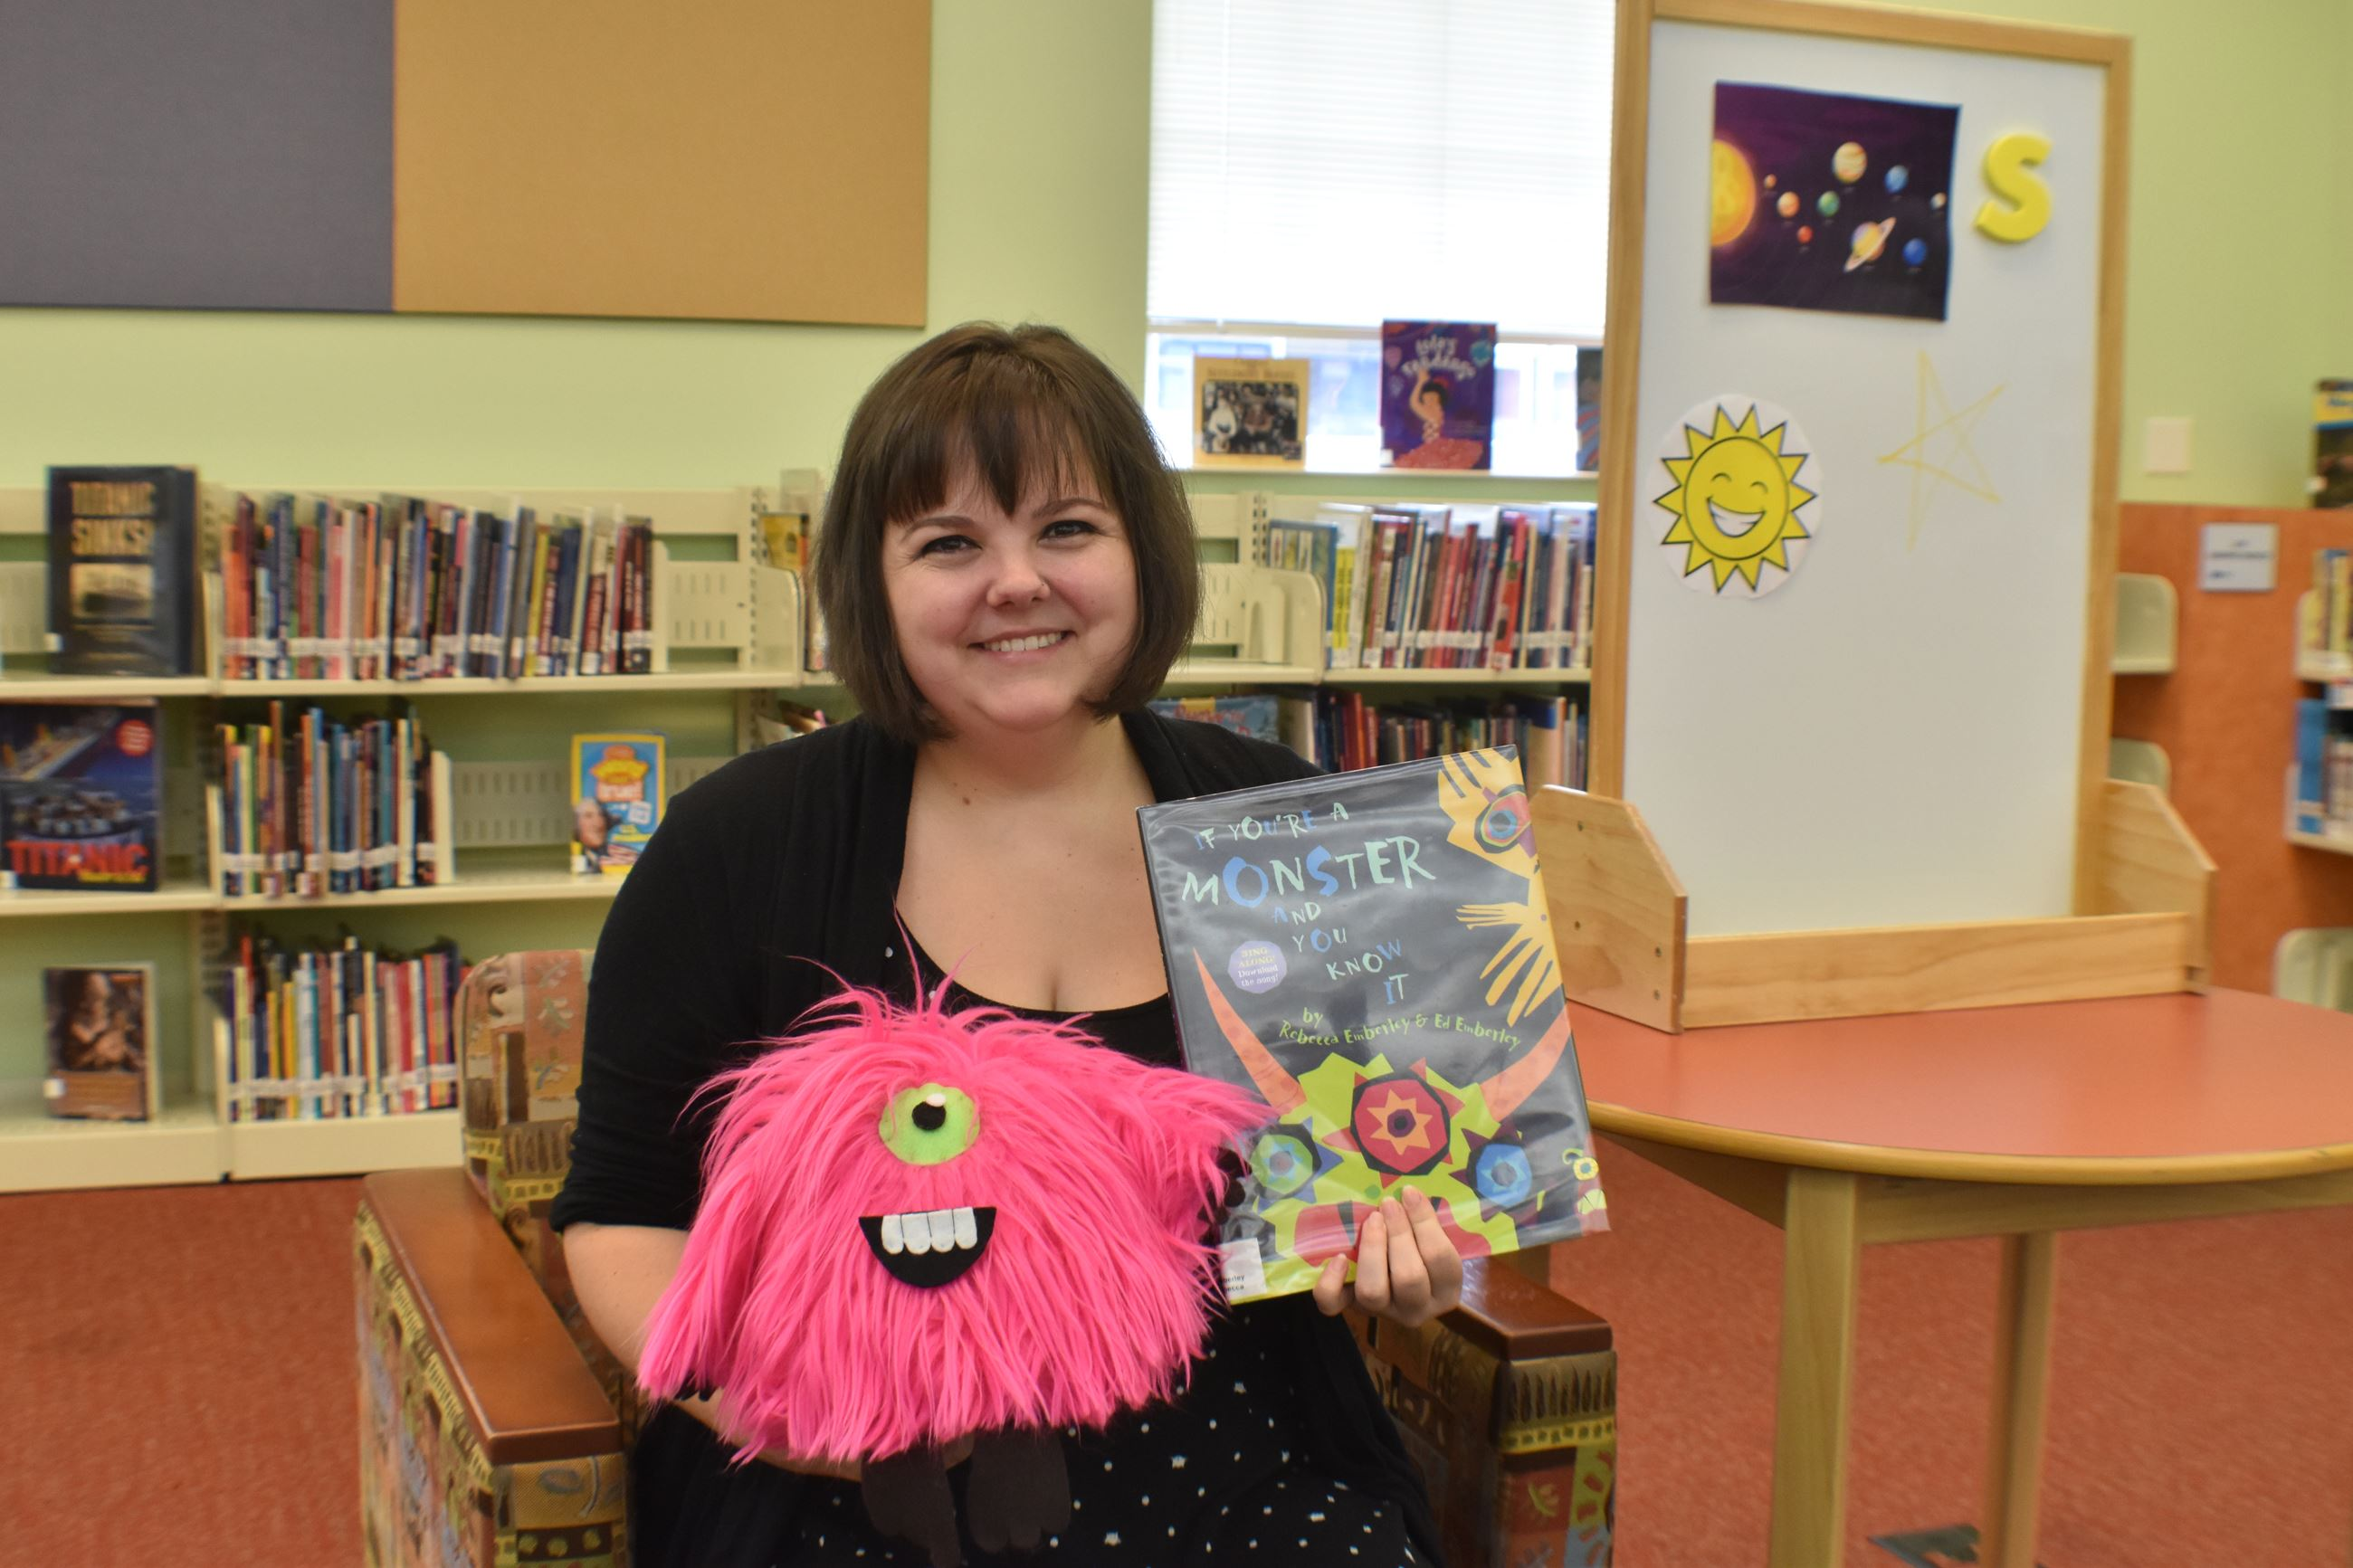 Library staff holding book and pink stuffed monster Fred in front of bookshelves